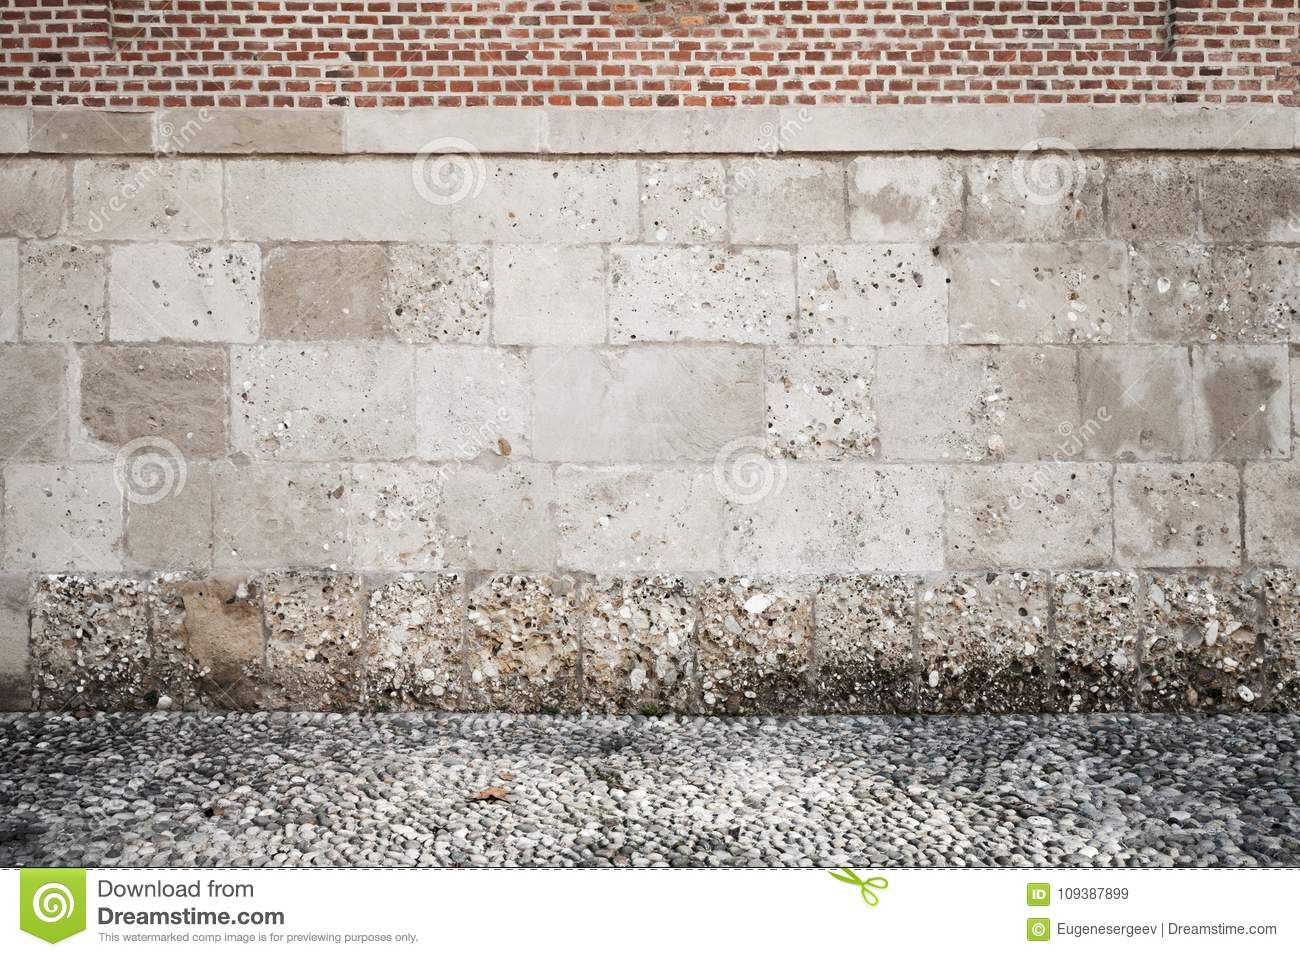 Empty Grunge Interior Background With Rough Wall Made Of Stone Blocks And  Red Bricks